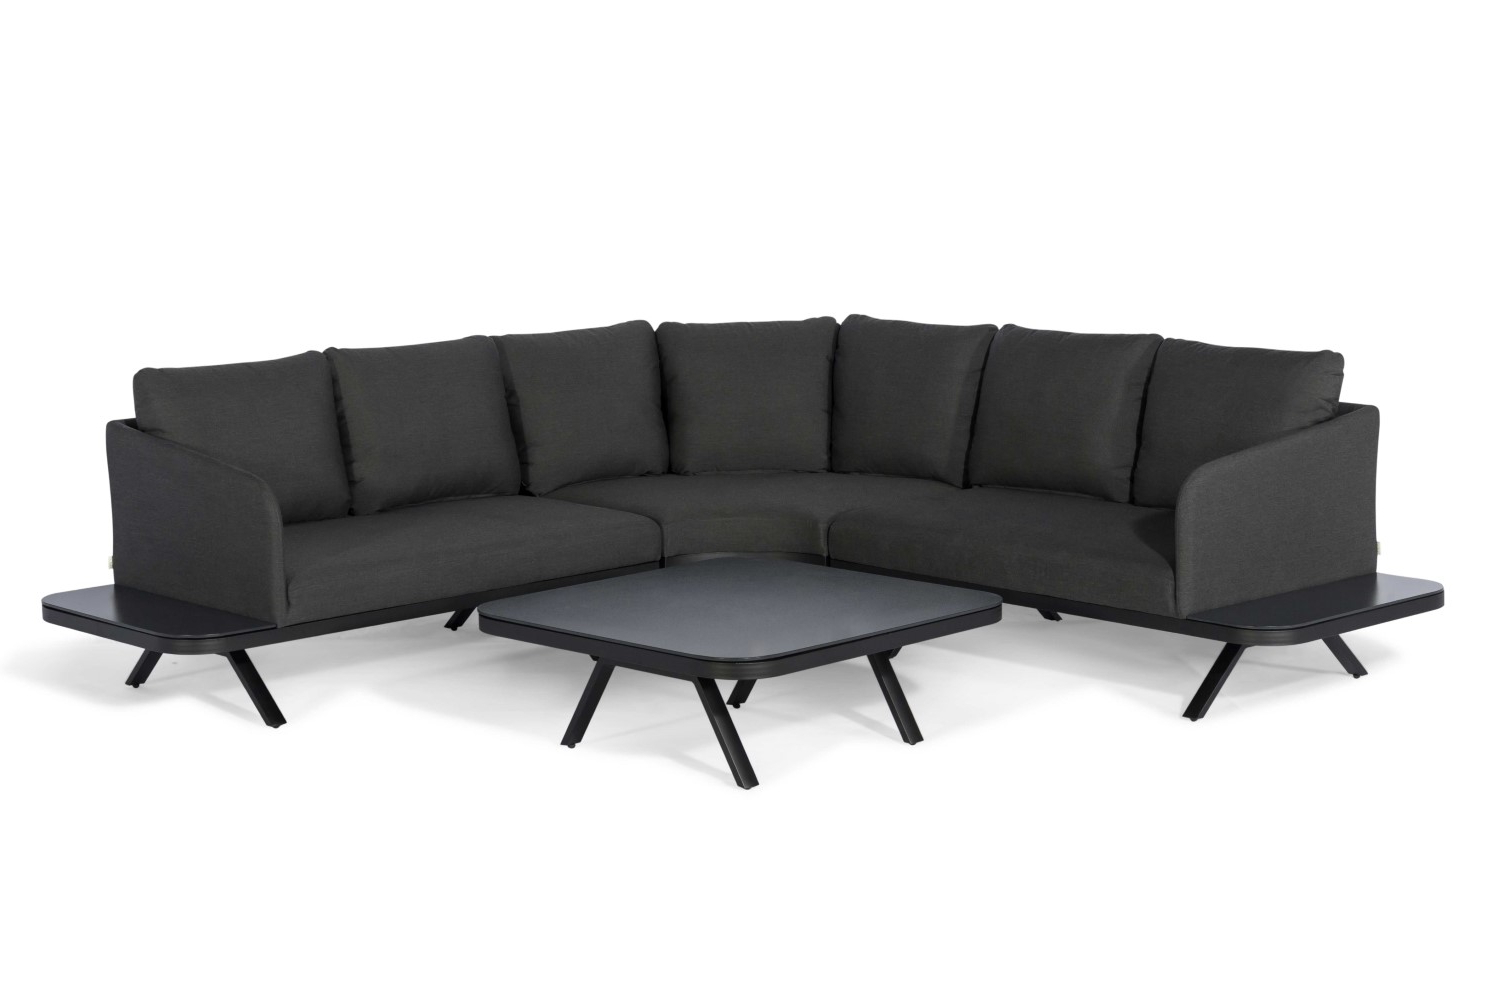 Trendy Katie Charcoal Sofas With Regard To Maze Rattan – Cove Corner Sofa Group – Charcoal – Ls Living (View 8 of 20)